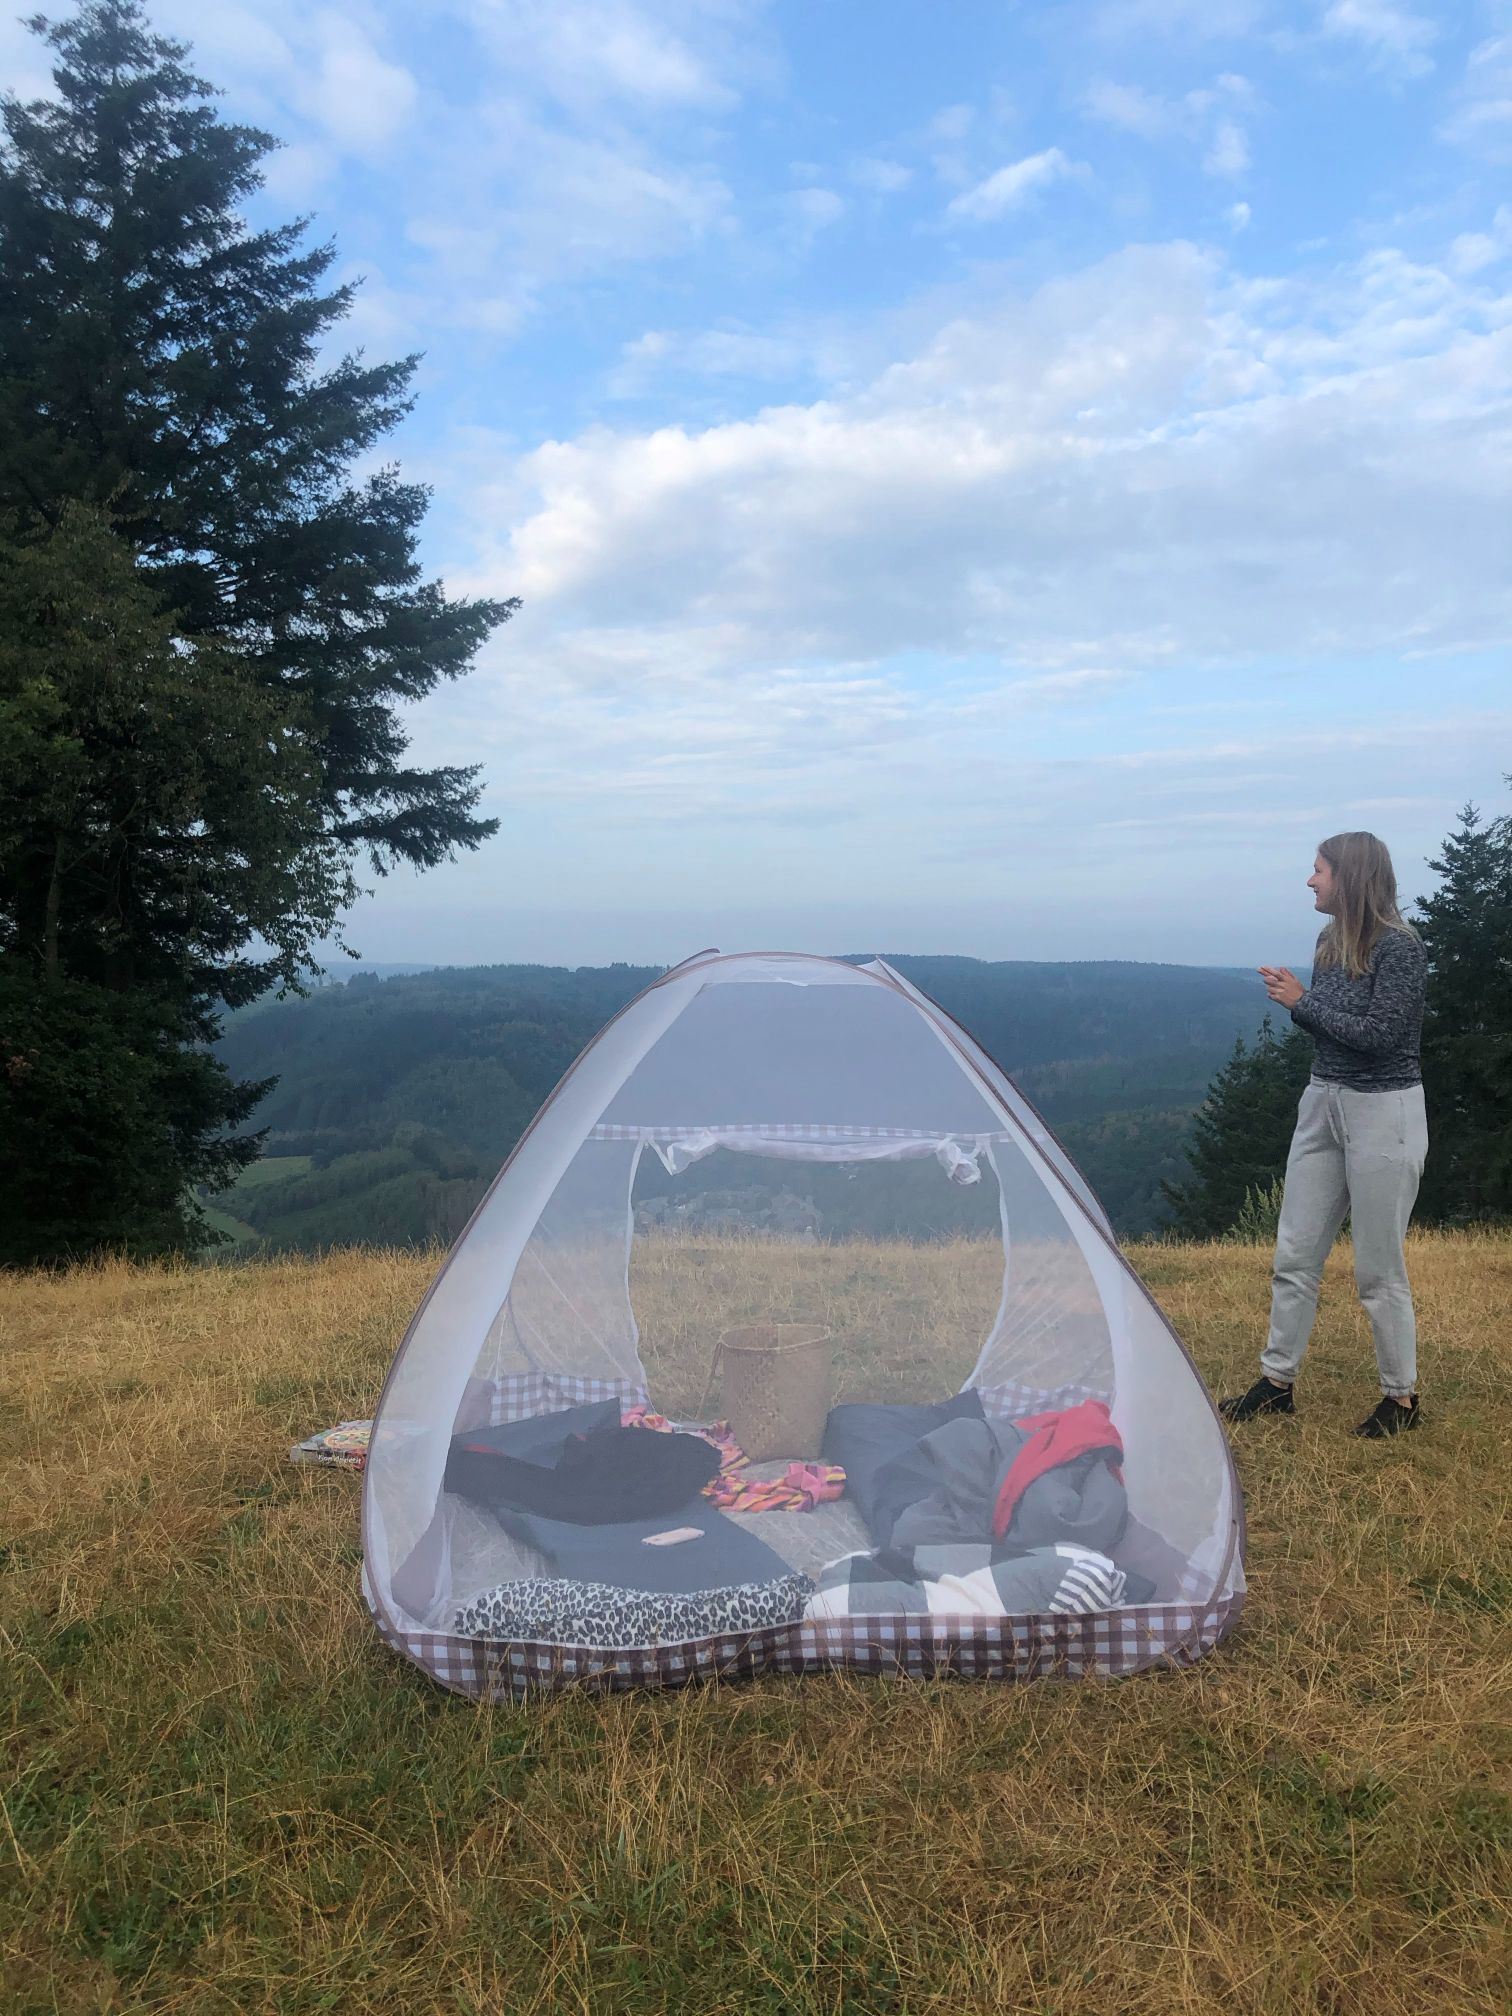 Camping with mosquito net in nature